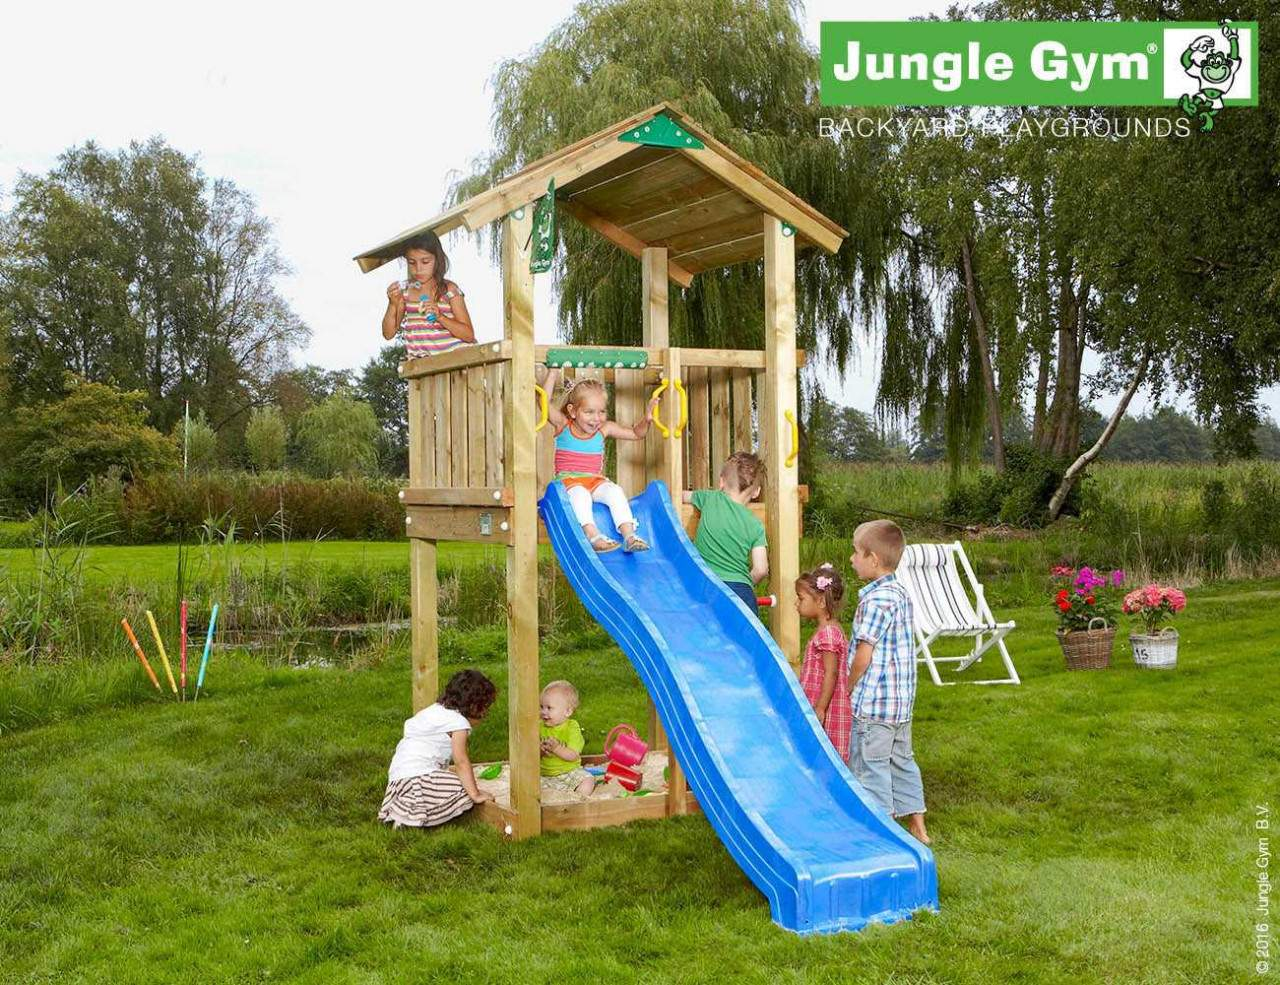 kinder spielturm jungle gym casa rutsche 2 30 m douglasie natur 317